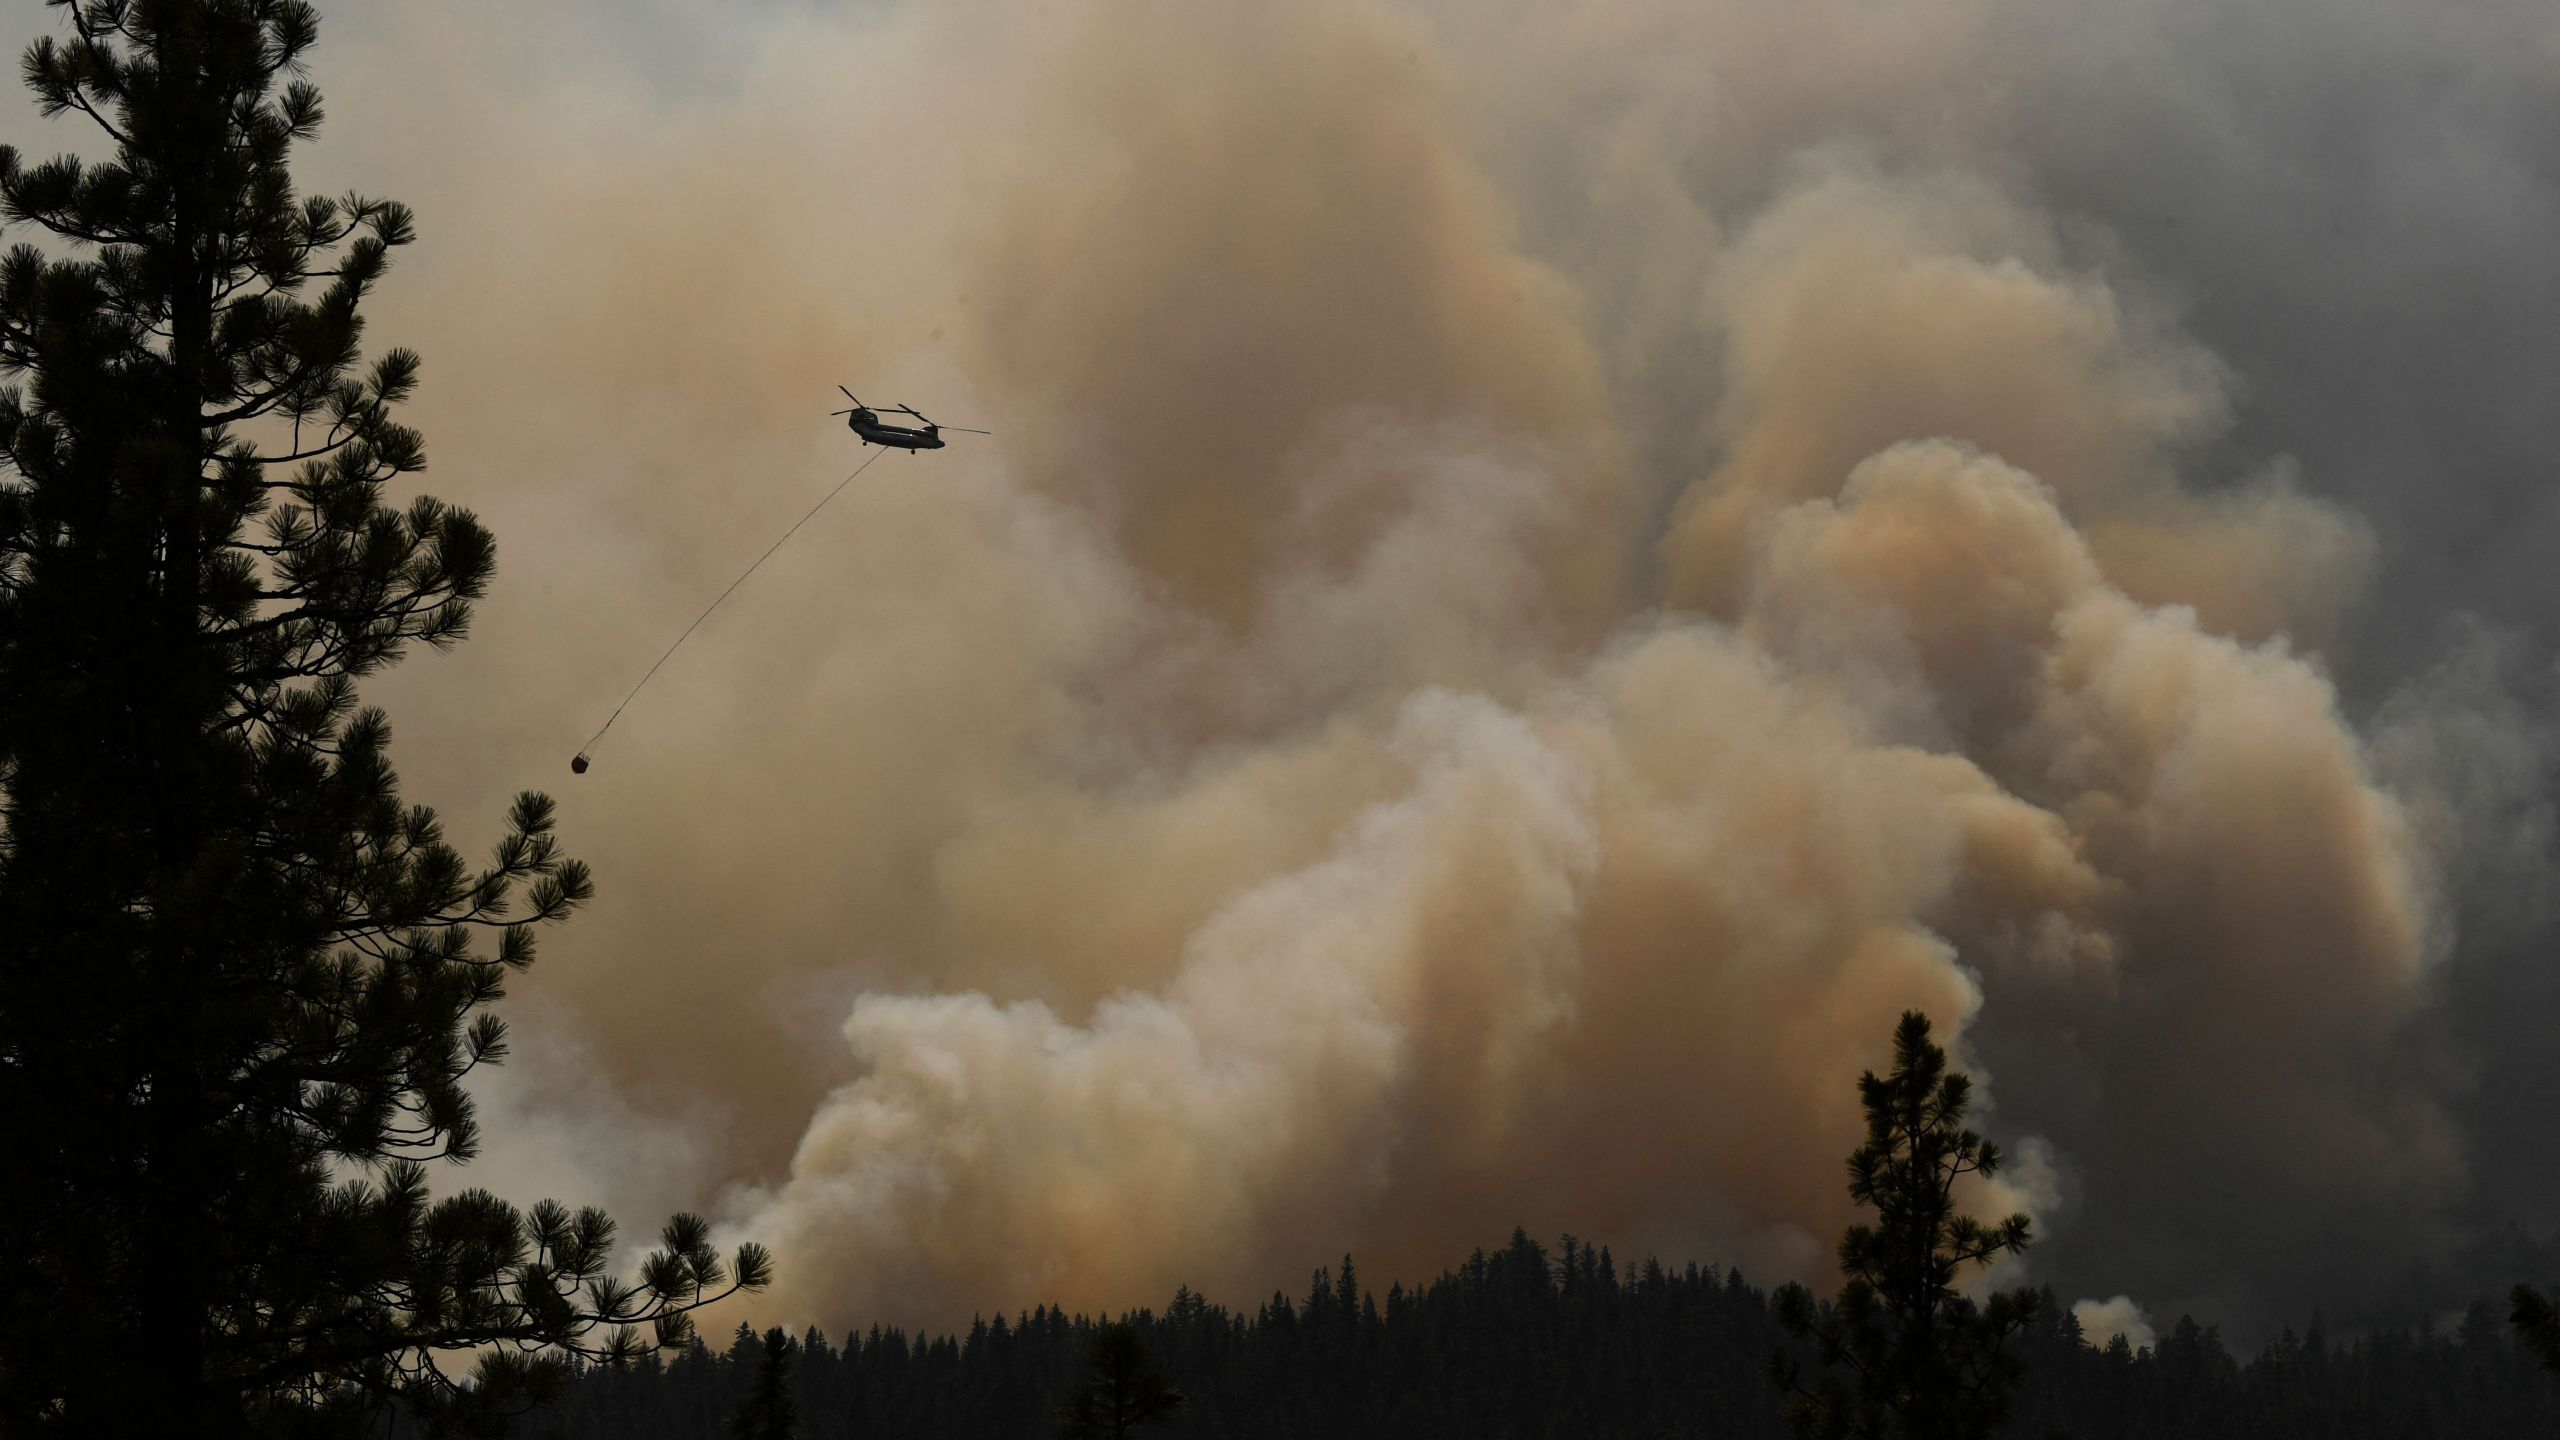 A firefighting helicopter flies past smoke plumes after making a water drop during the Dixie Fire on Aug. 18, 2021 near Susanville, California. (PATRICK T. FALLON/AFP via Getty Images)